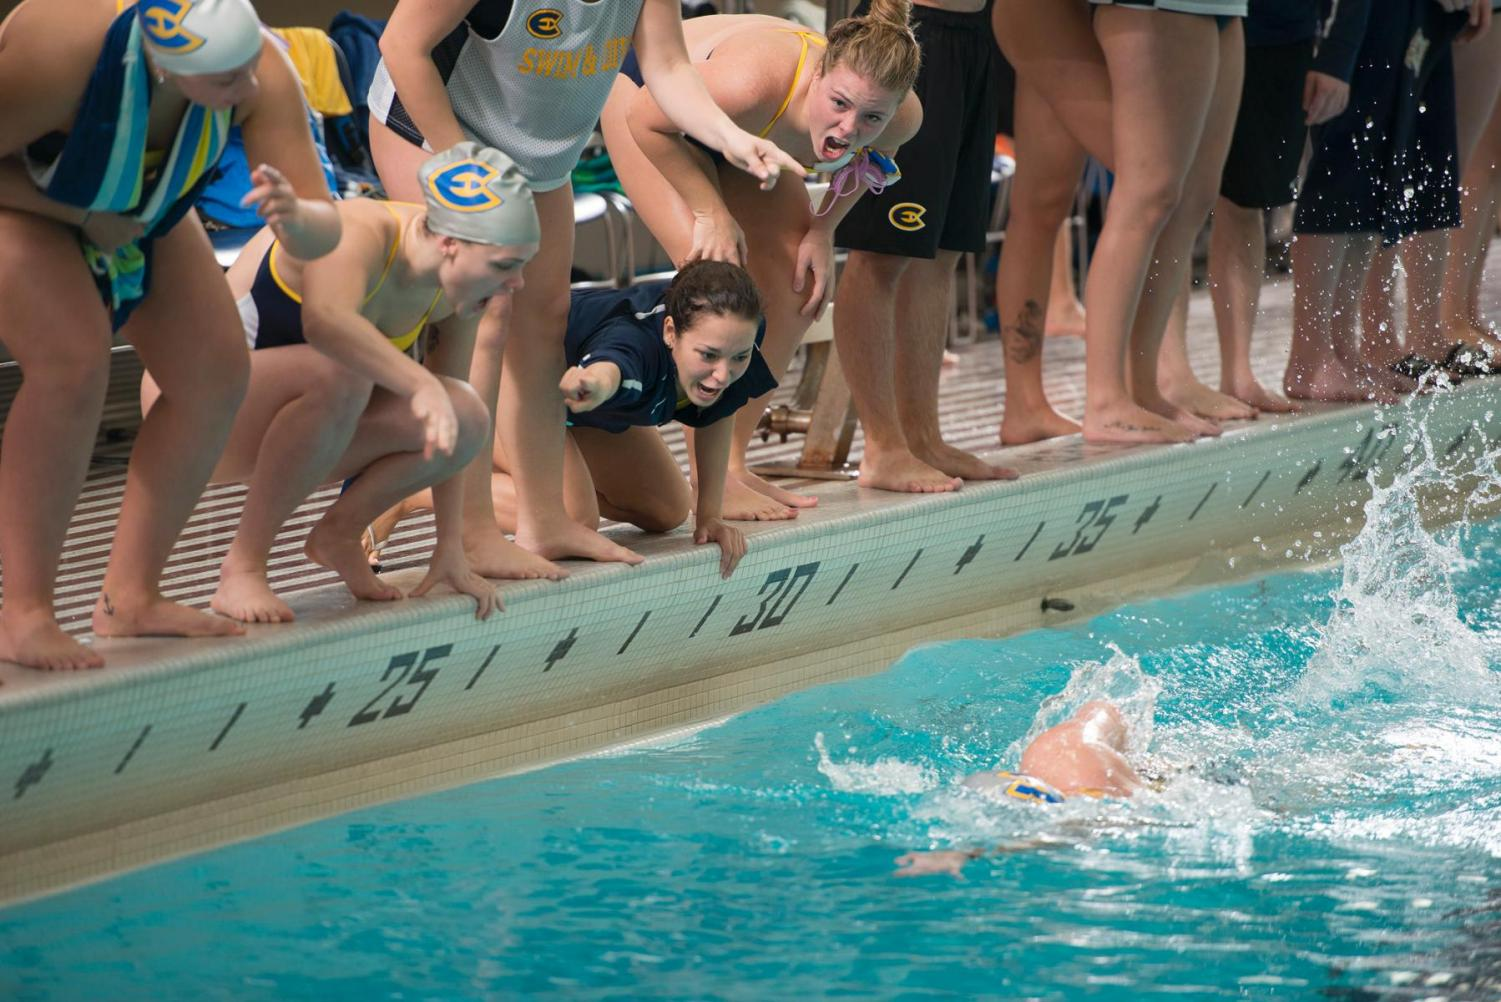 With two meets under the swim team's belt, the Blugolds are showing early season promise.